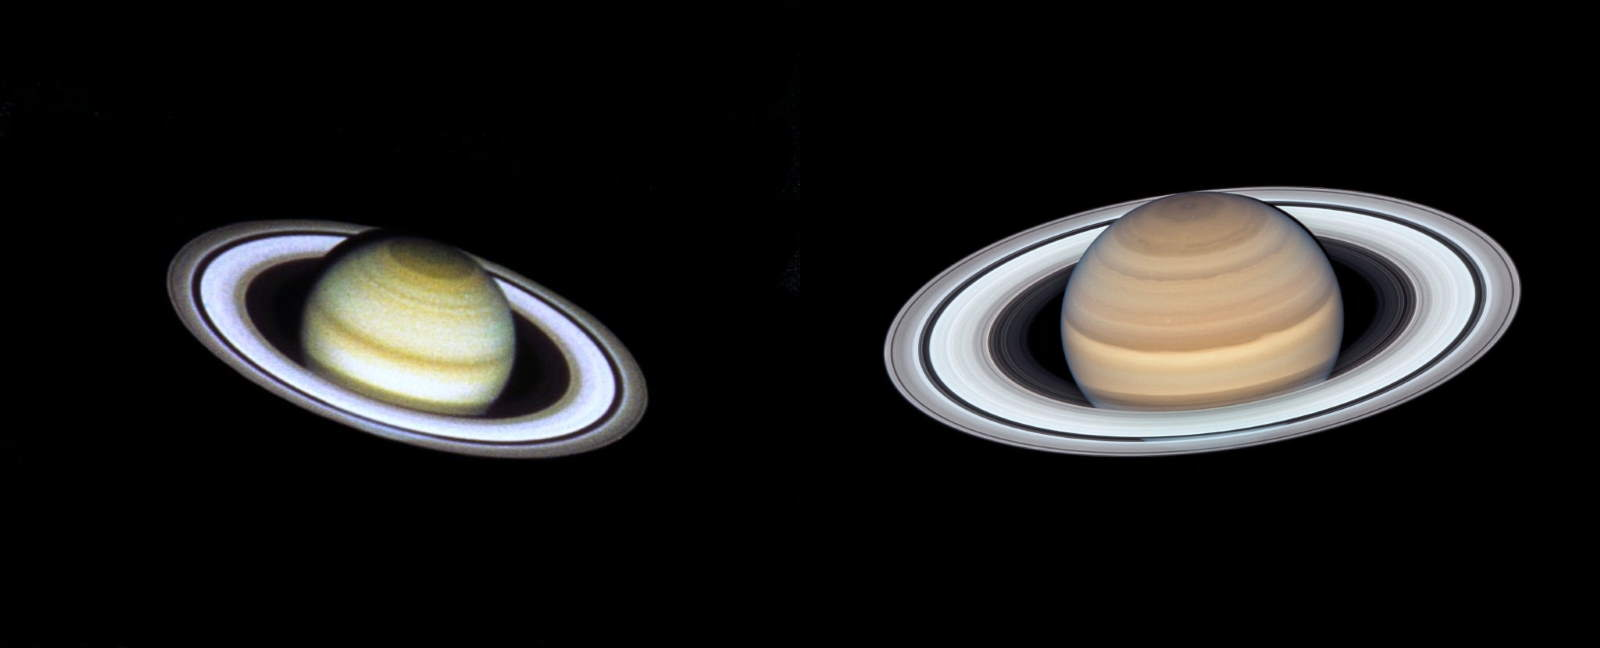 Hubble images of Saturn (1990, 2019)